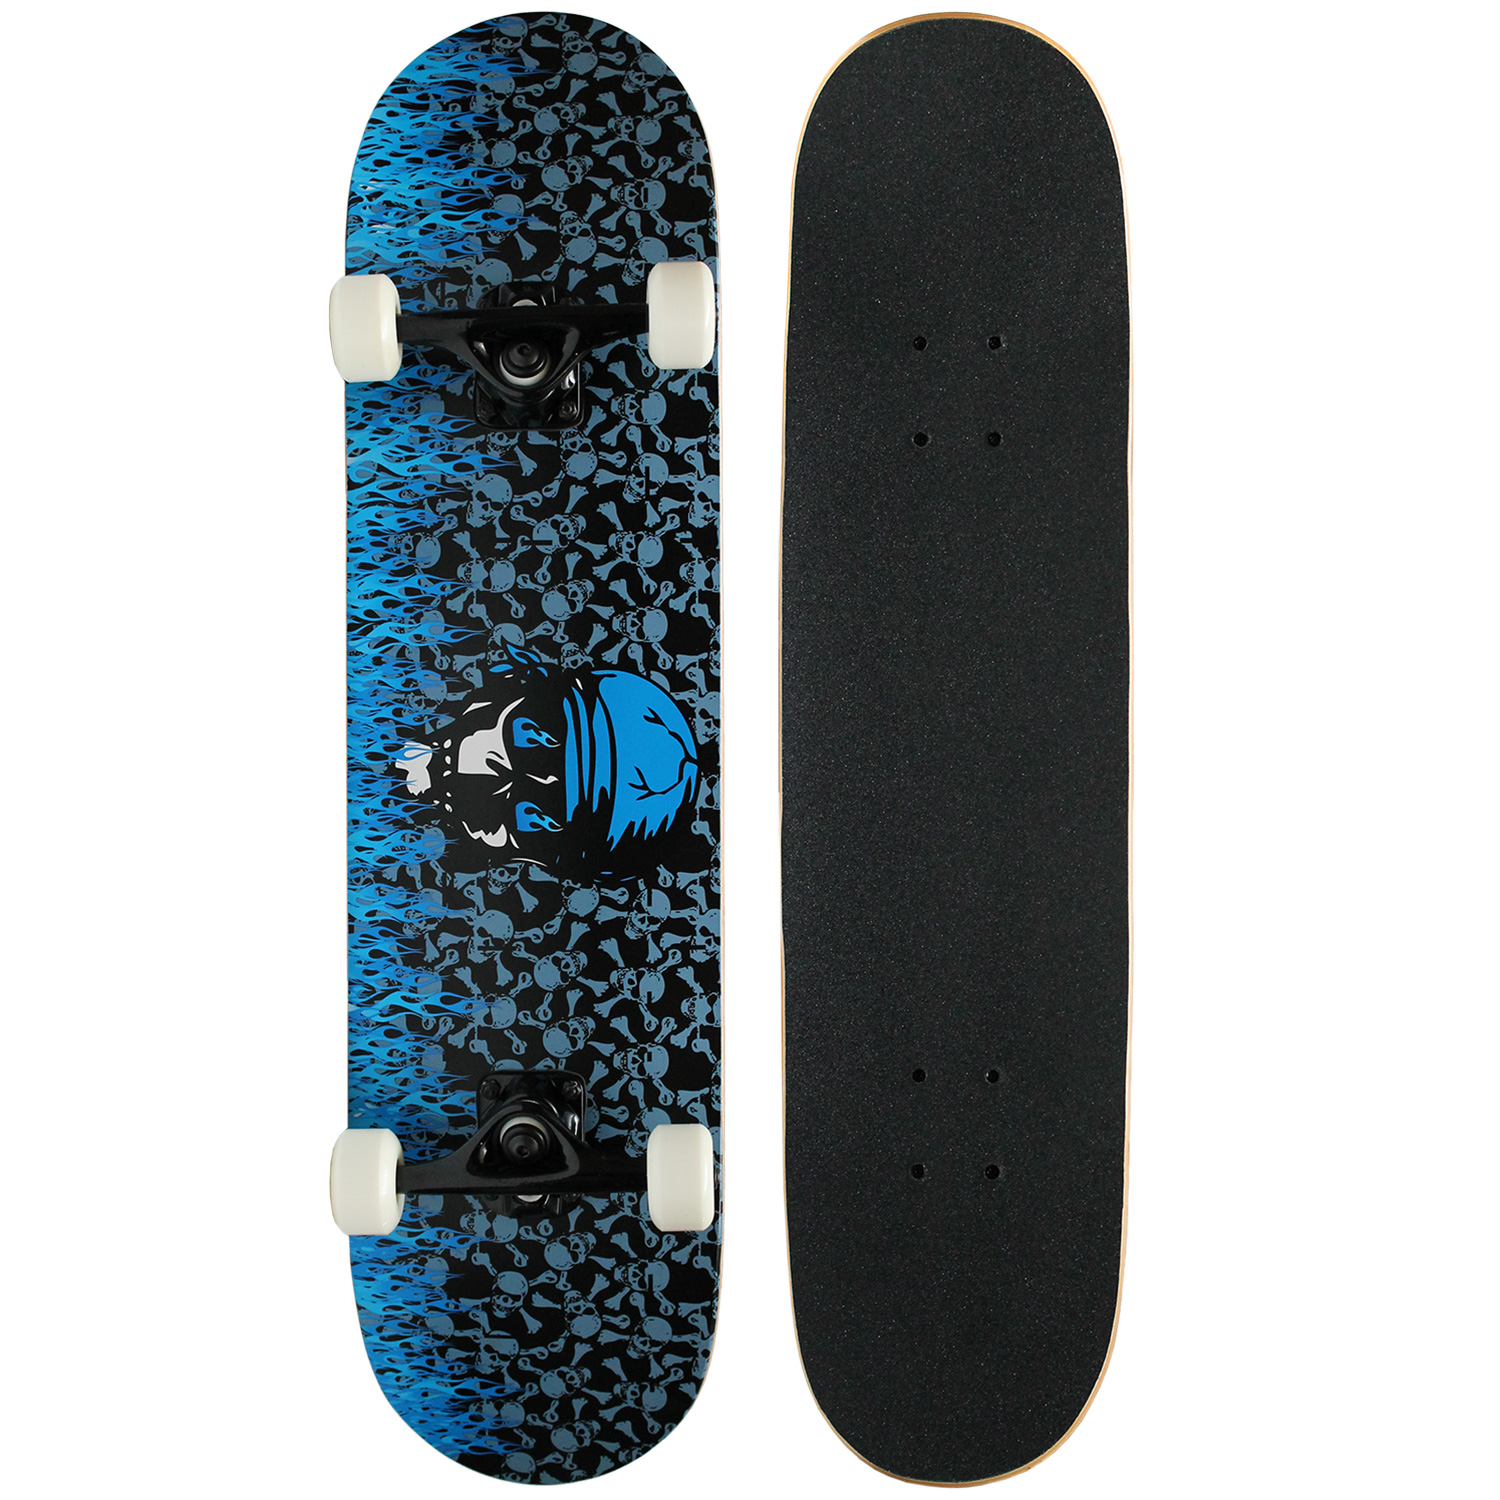 PRO Skateboard Complete KROWN Blue Flame 7.75 in FREE SHIPPING by